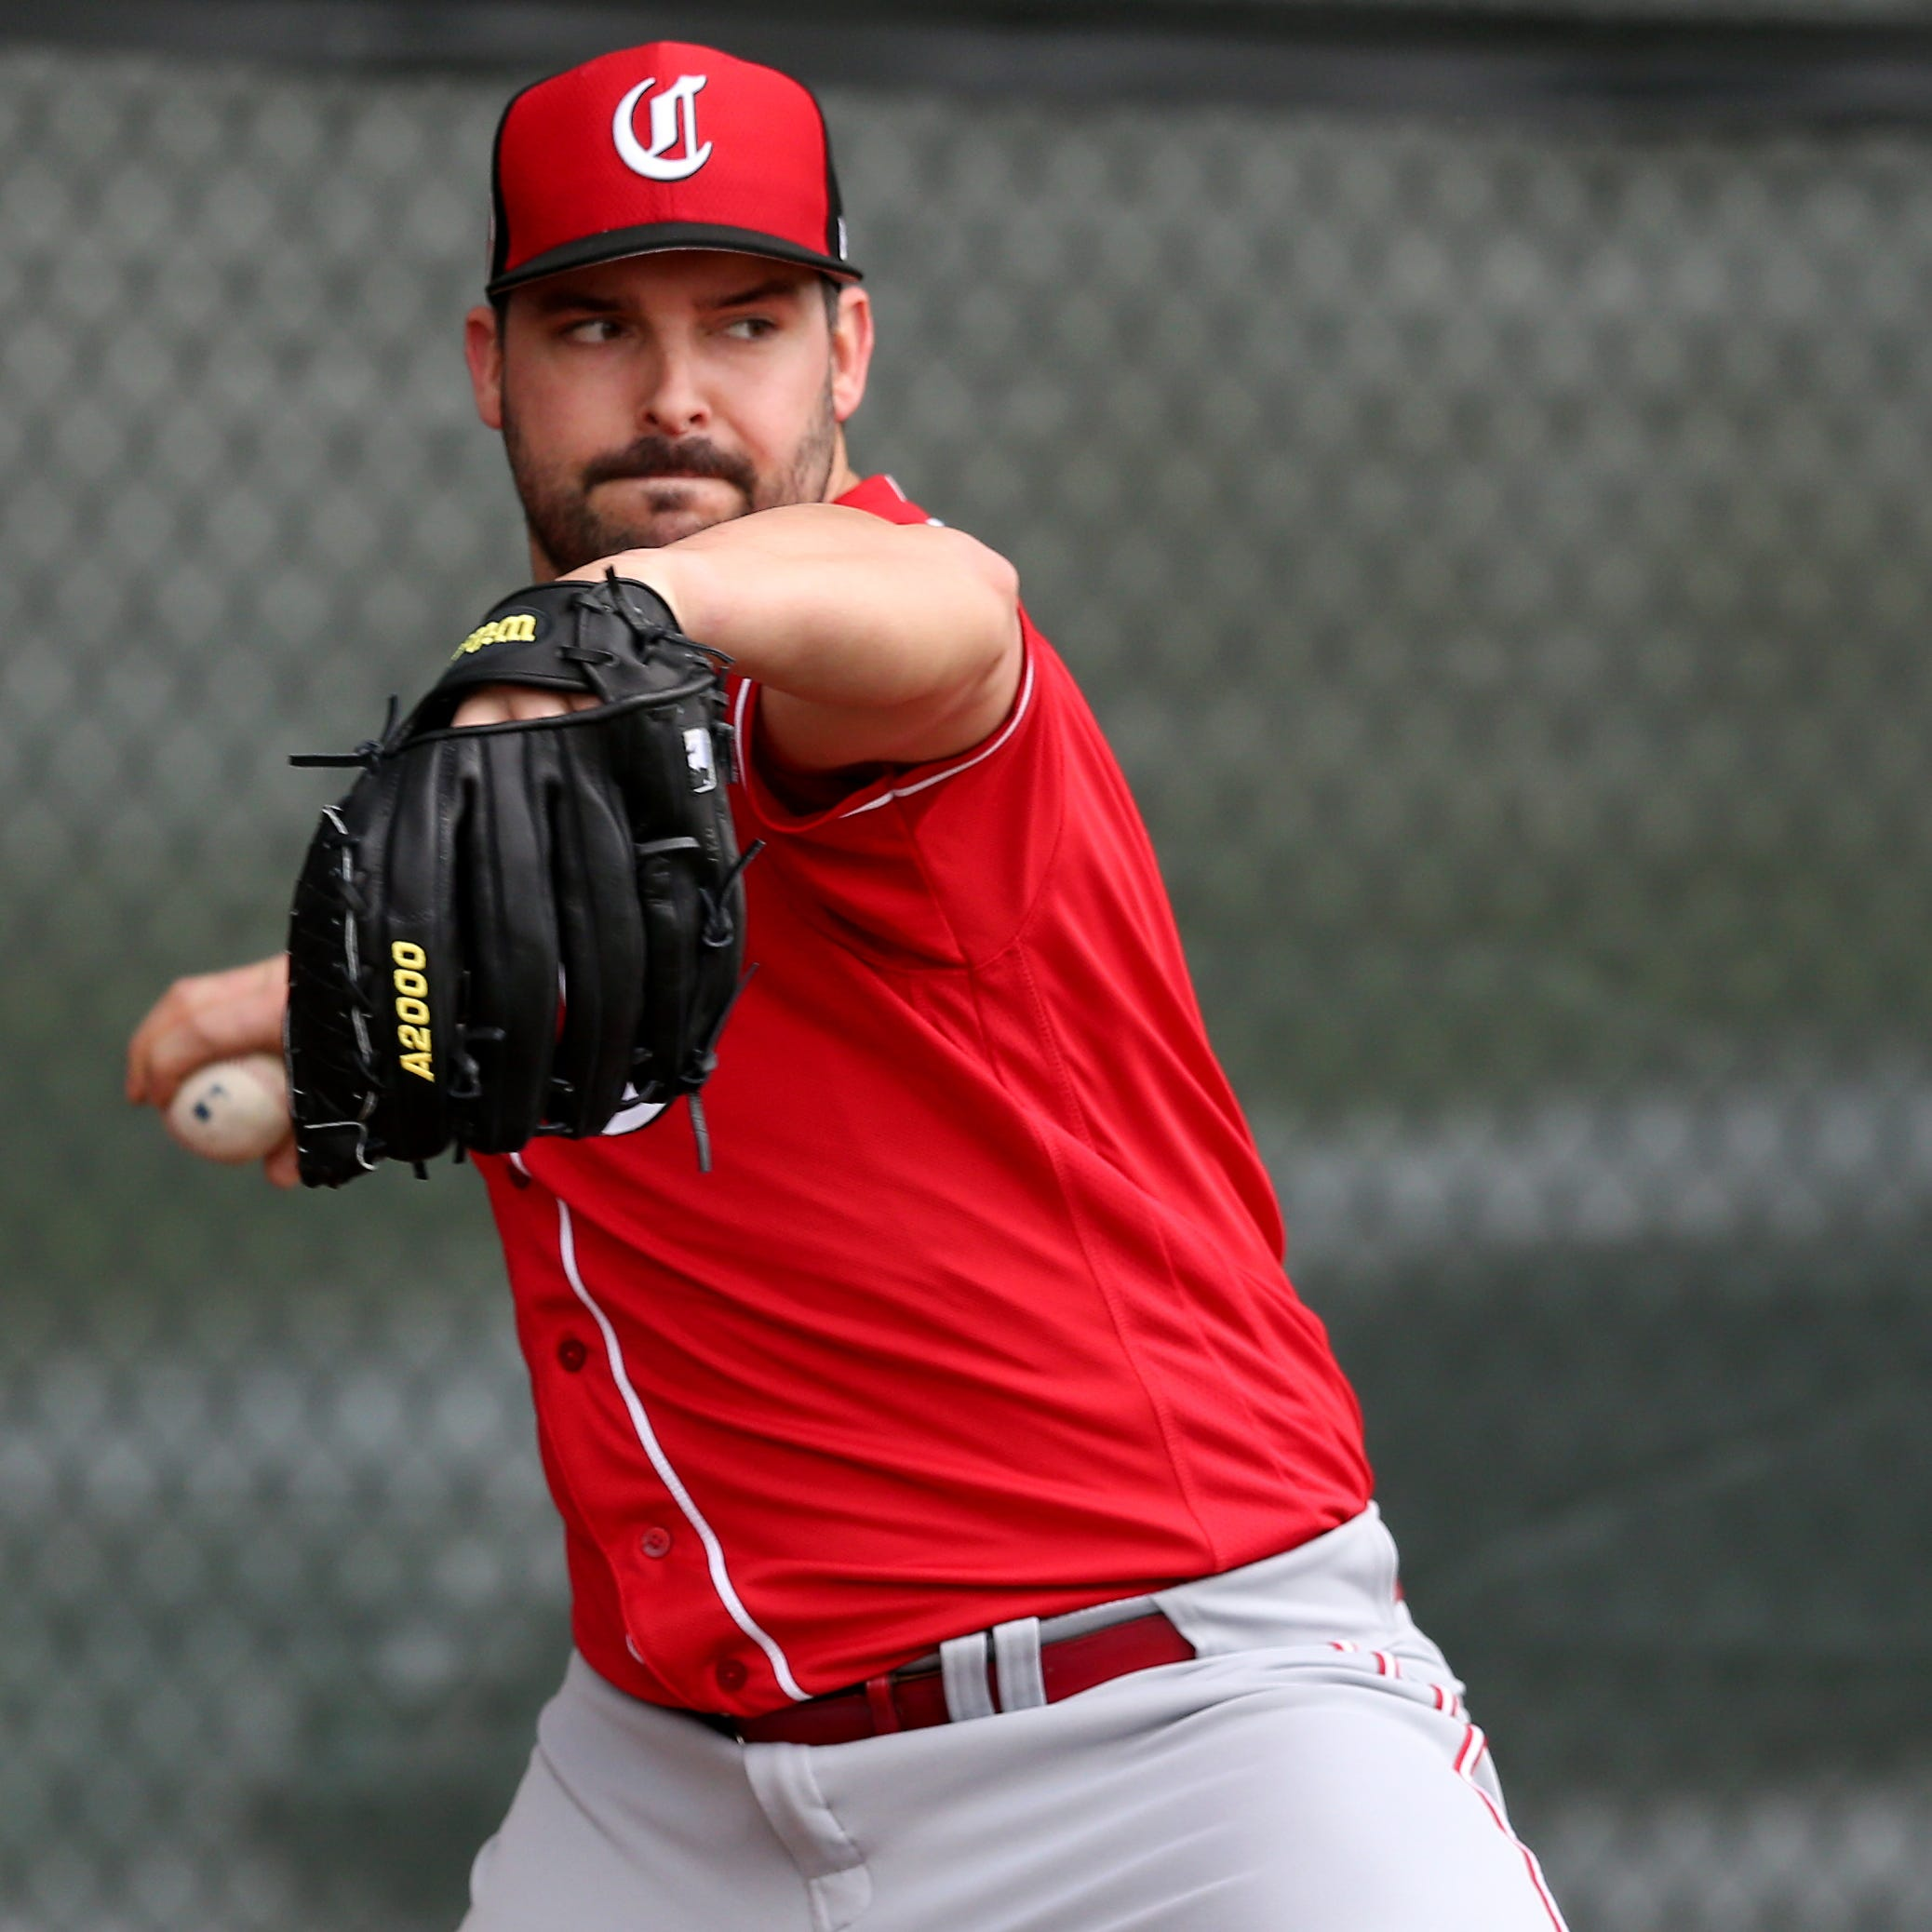 Tanner Roark continues strong spring in Cincinnati Reds' 6-1 win over Texas Rangers